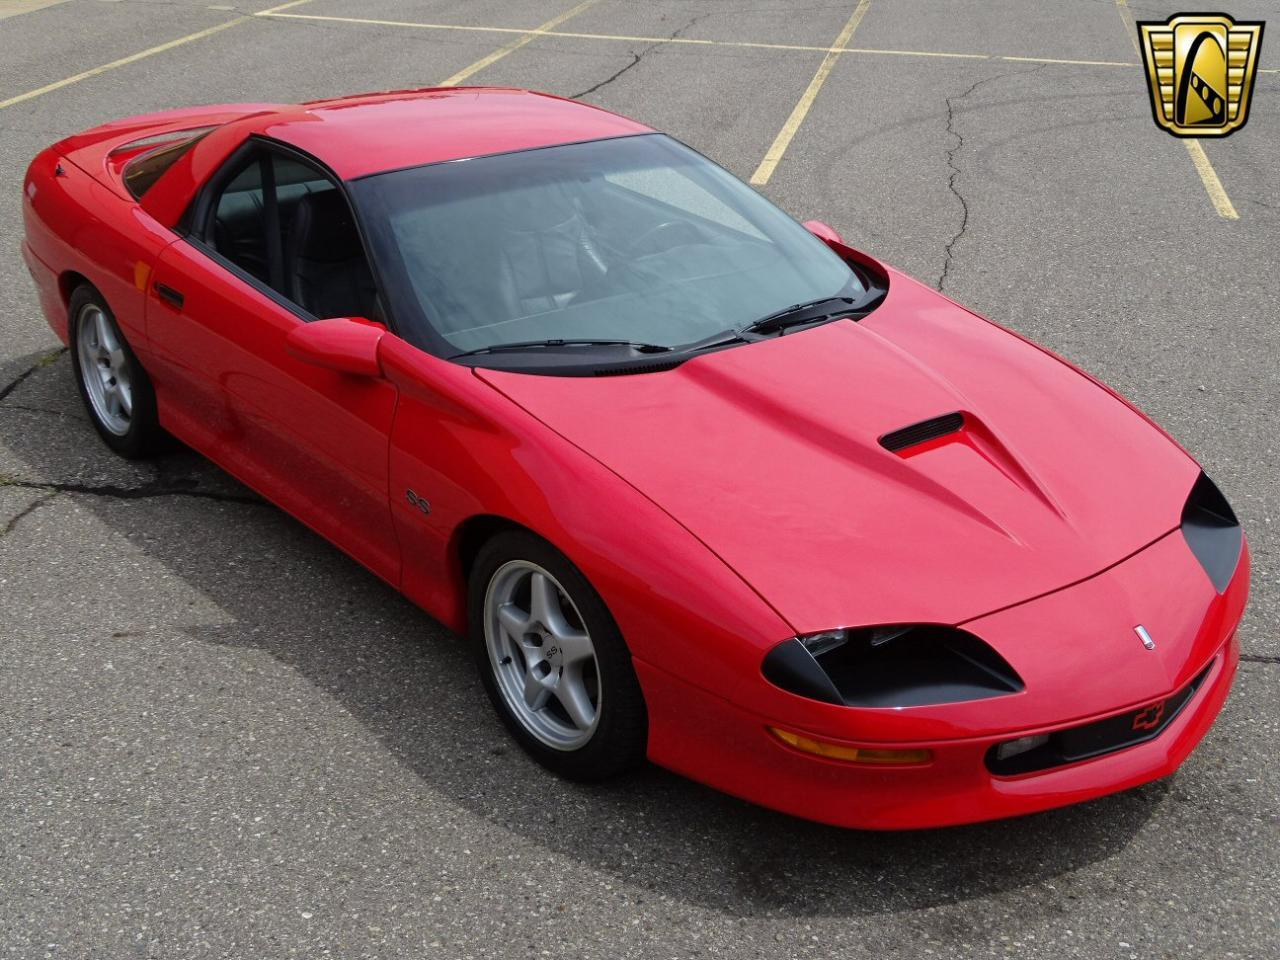 Large Picture of '96 Camaro located in Dearborn Michigan Offered by Gateway Classic Cars - Detroit - LDUP